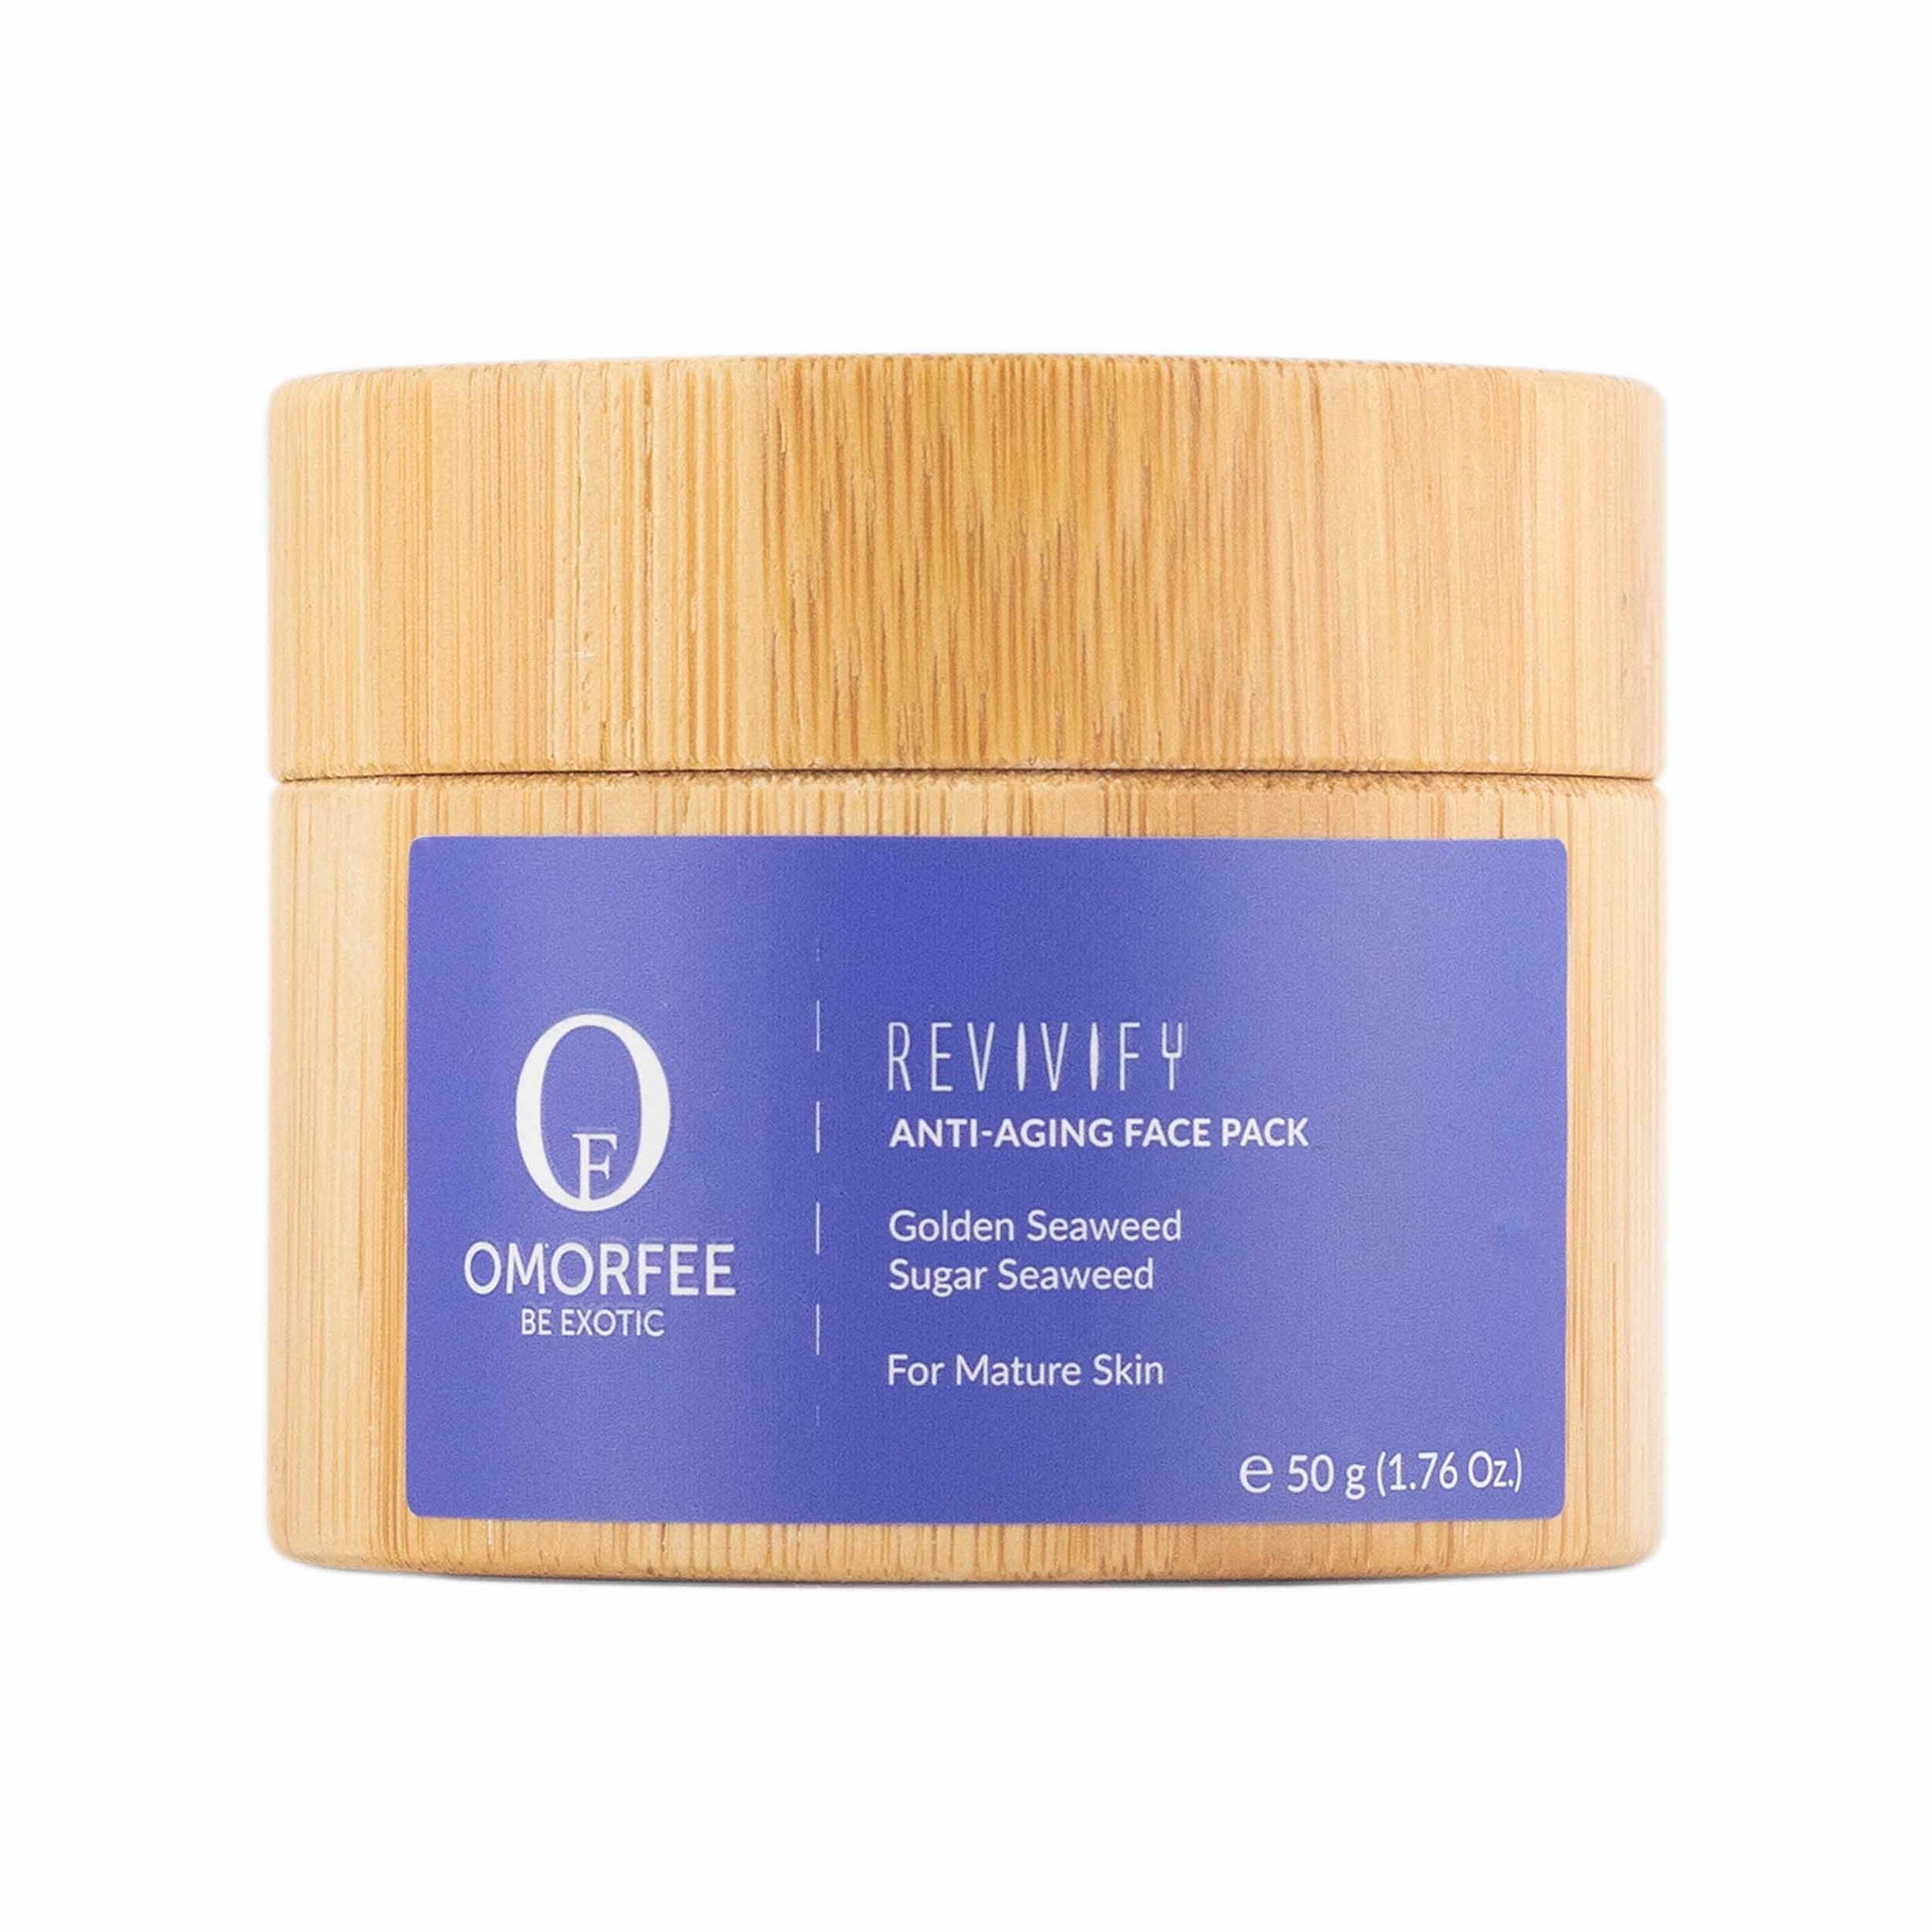 Revivify Anti Aging Face Pack